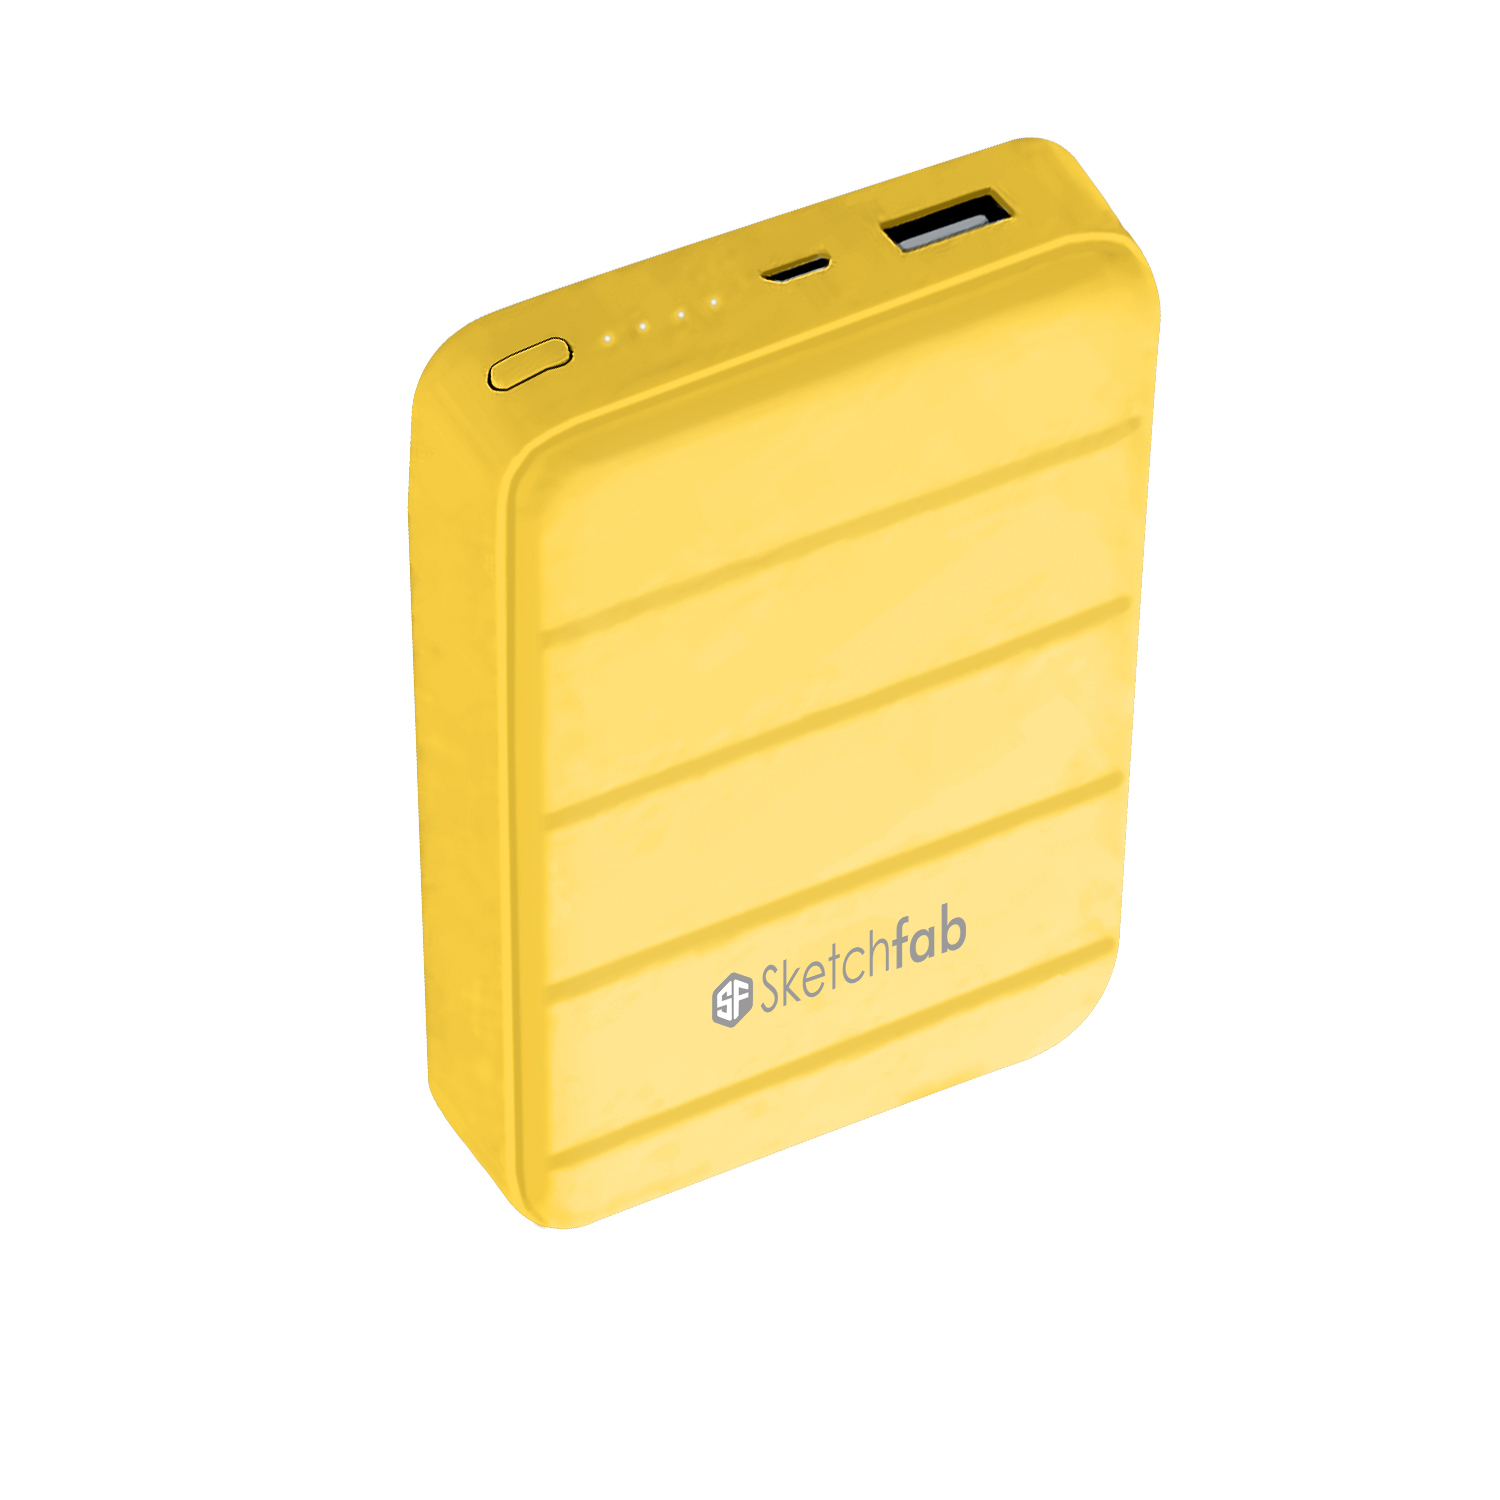 Sketchfab SK-123 Power 10000mAh Lithium-ion Power Bank/Fast Charging 1 Output Power Bank